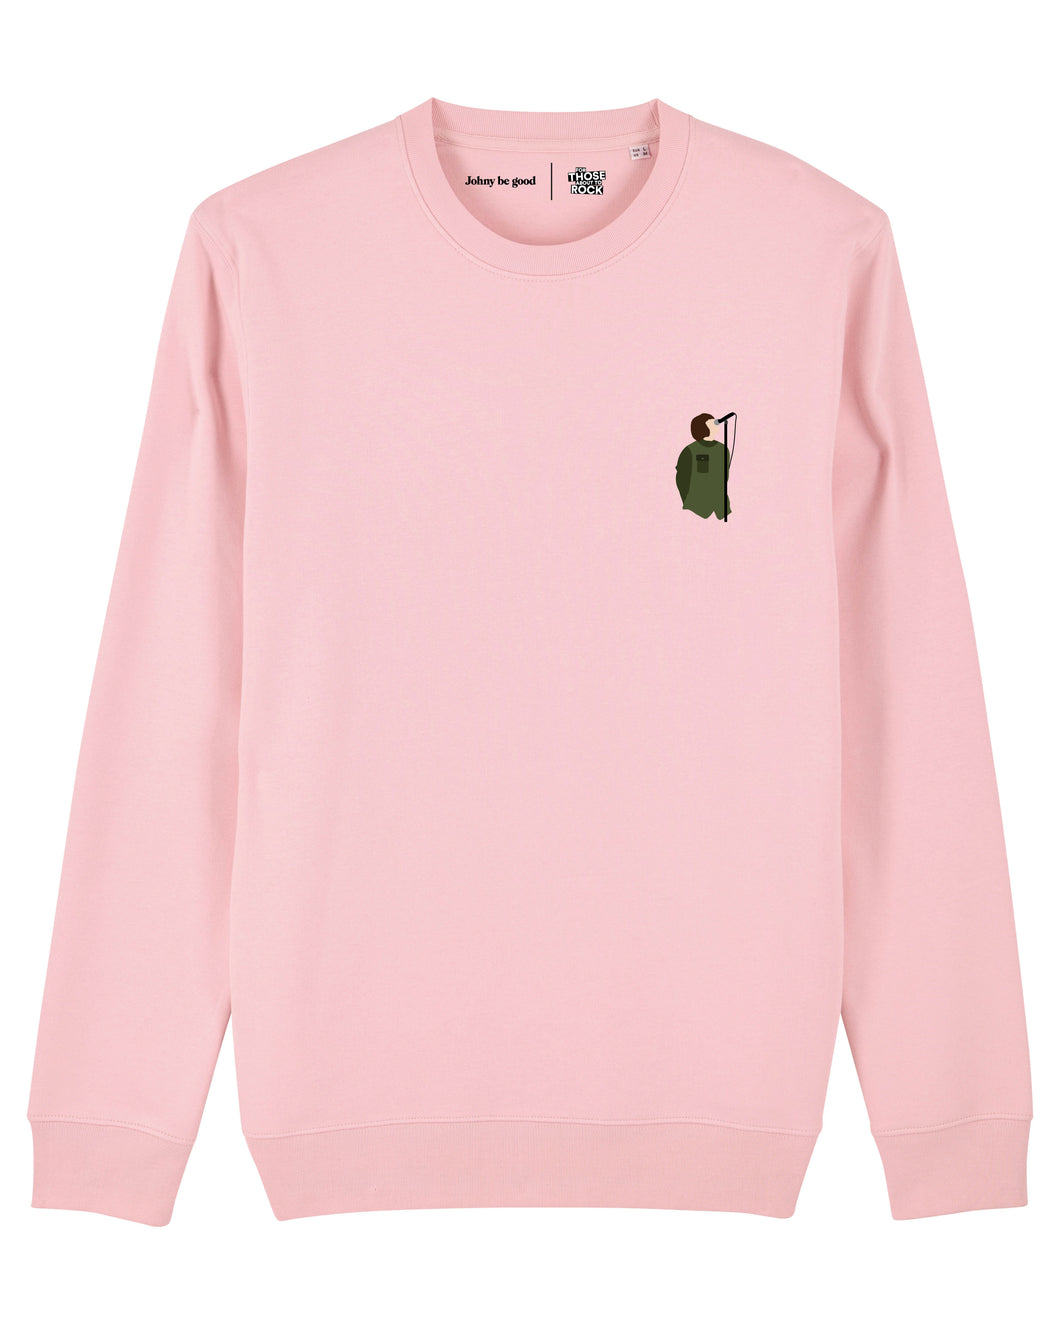 Sweater LIAM pink - preorder 2-3 weeks